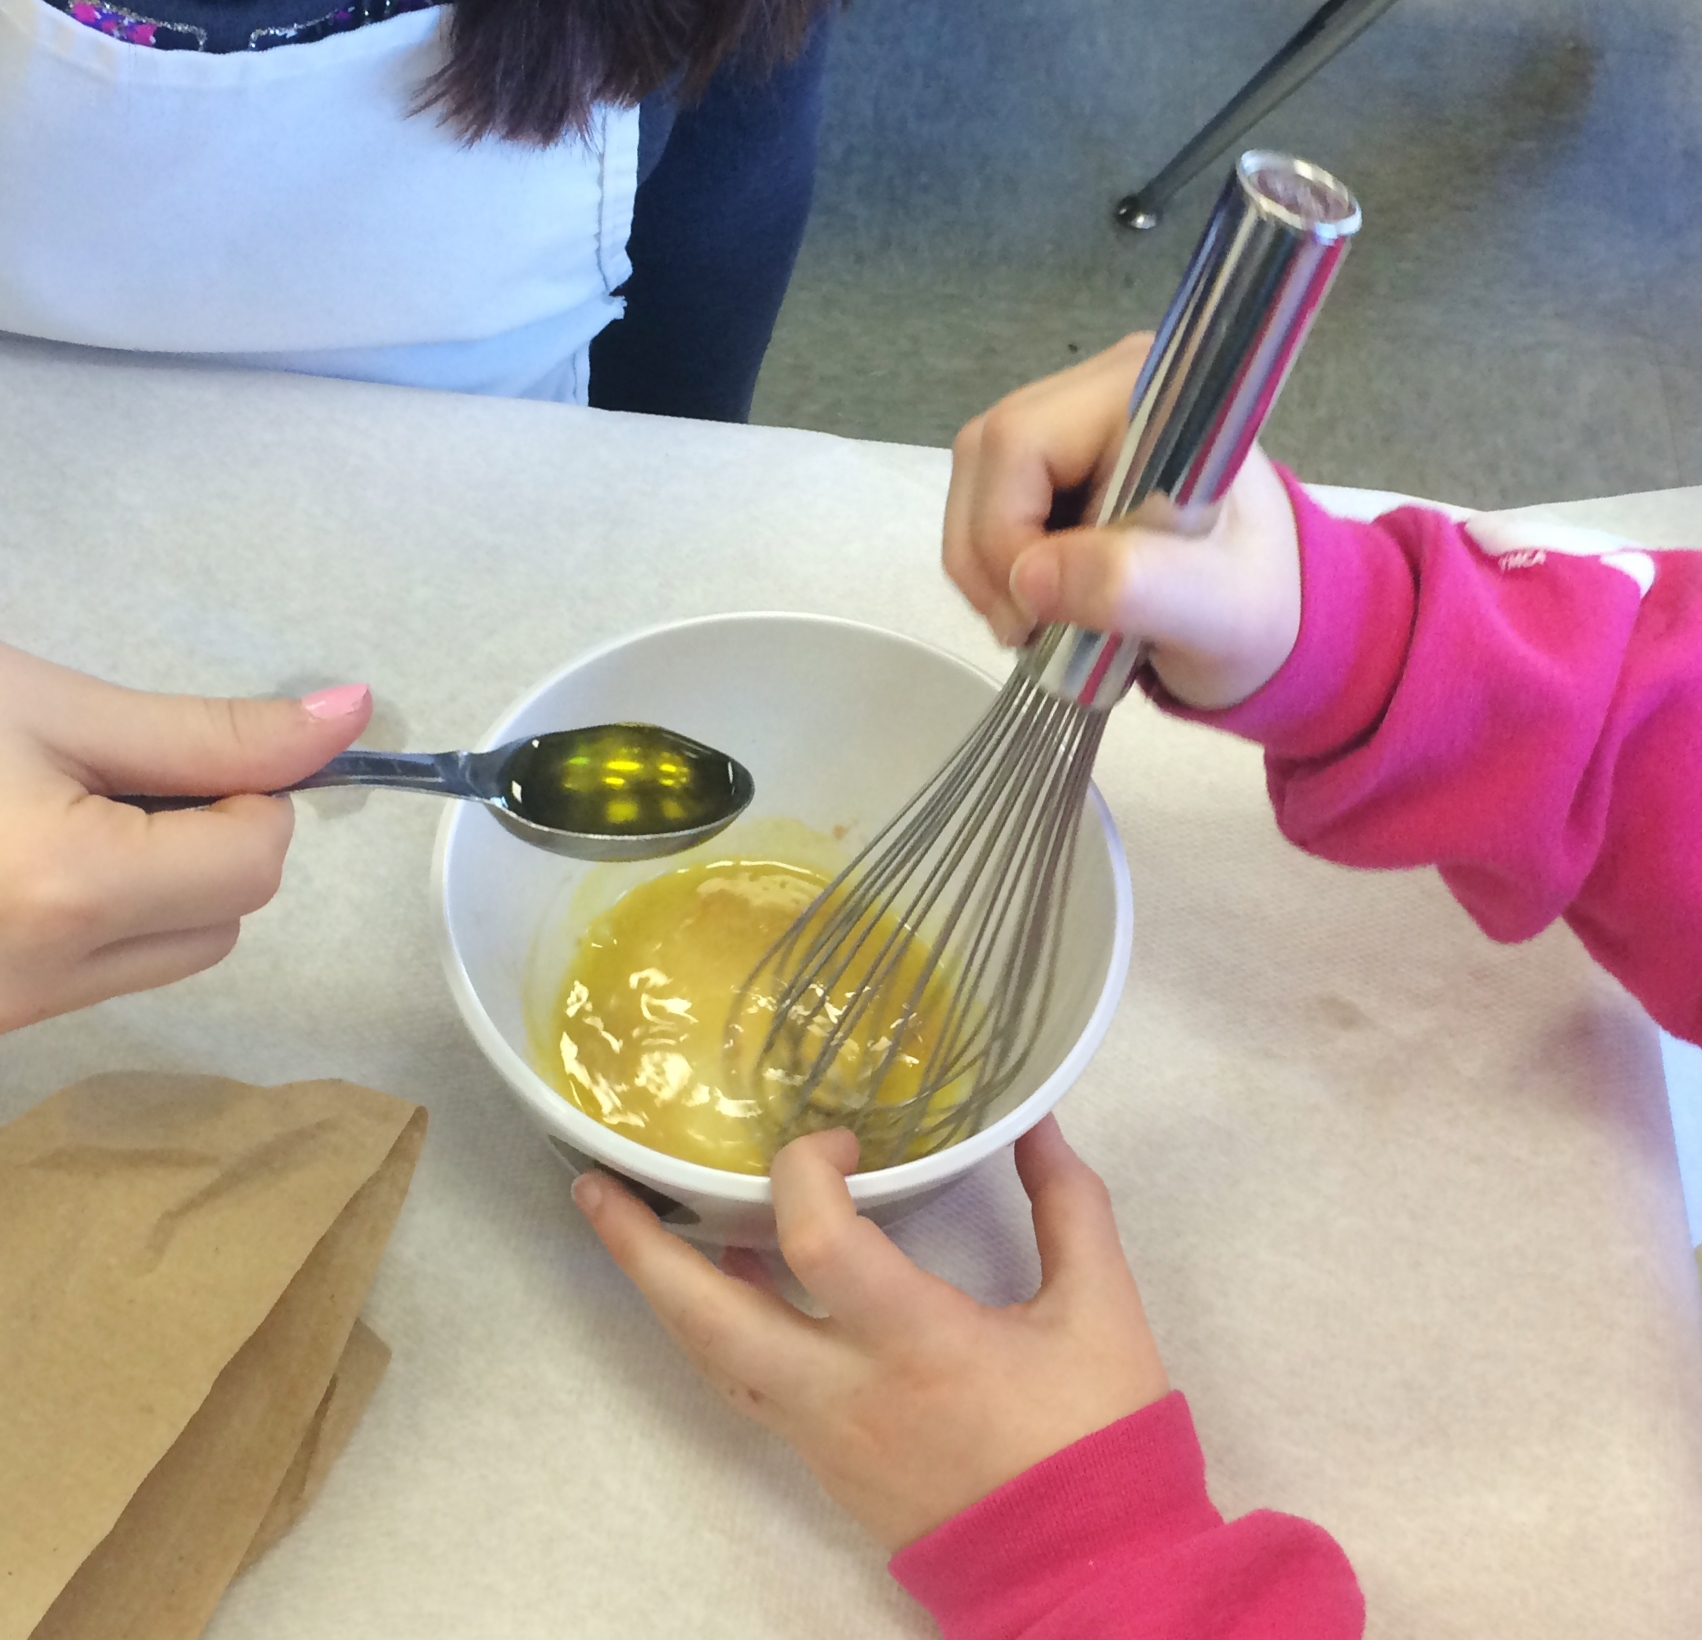 Friends working together to whisk the olive oil into the vinaigrette.